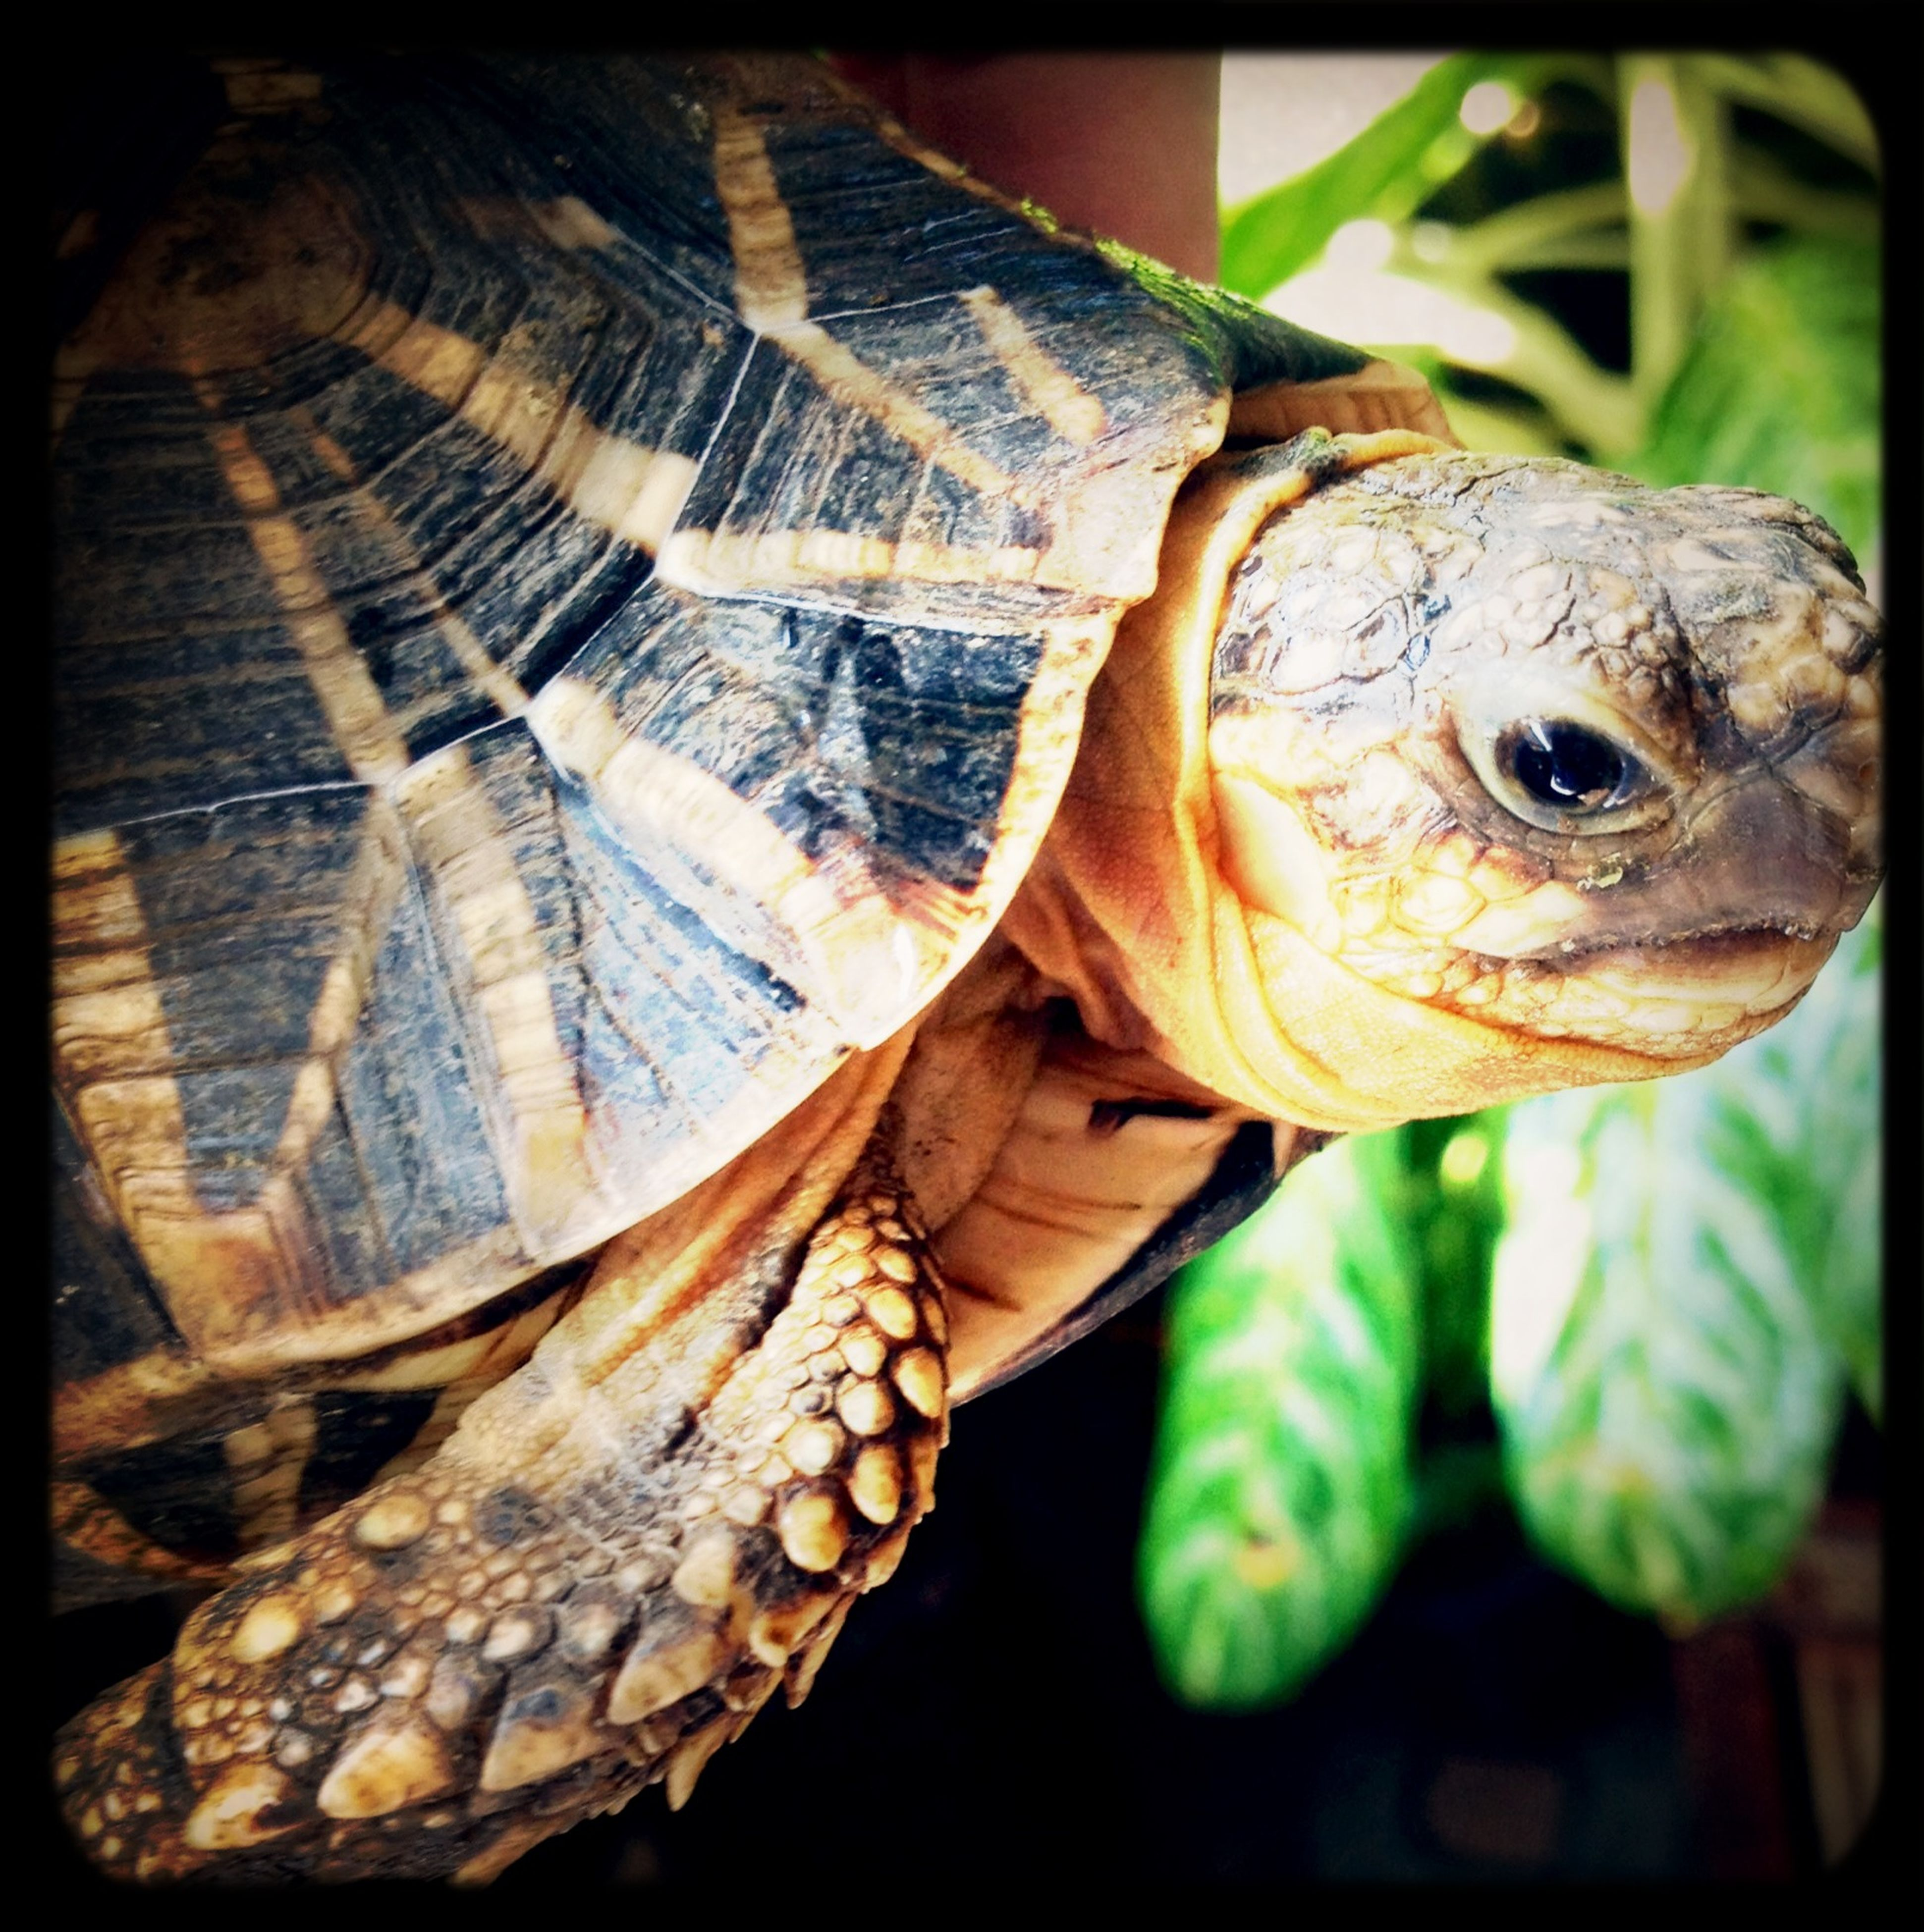 animal themes, one animal, animals in the wild, wildlife, close-up, reptile, transfer print, animal head, focus on foreground, zoo, portrait, animals in captivity, auto post production filter, outdoors, animal markings, day, animal body part, side view, turtle, zoology